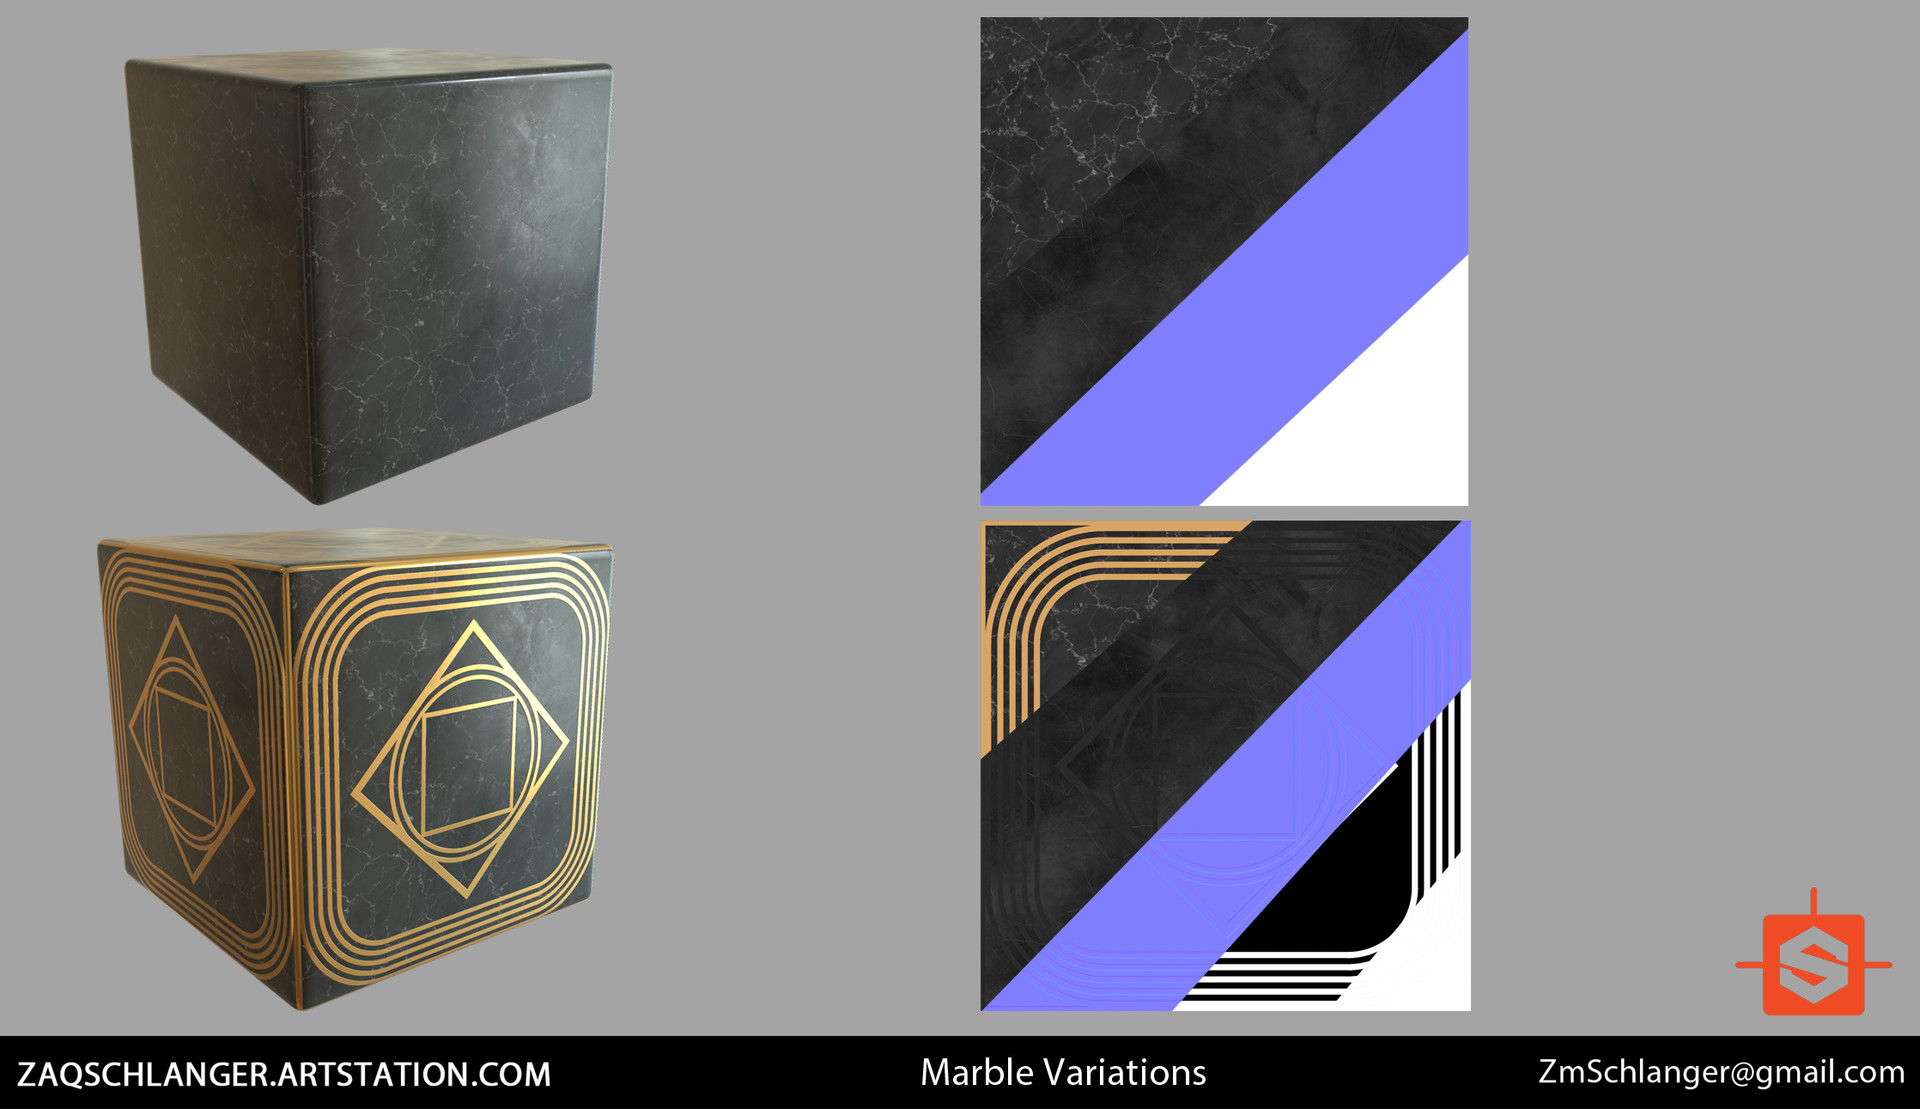 Both procedural marble materials made in Substance Designer